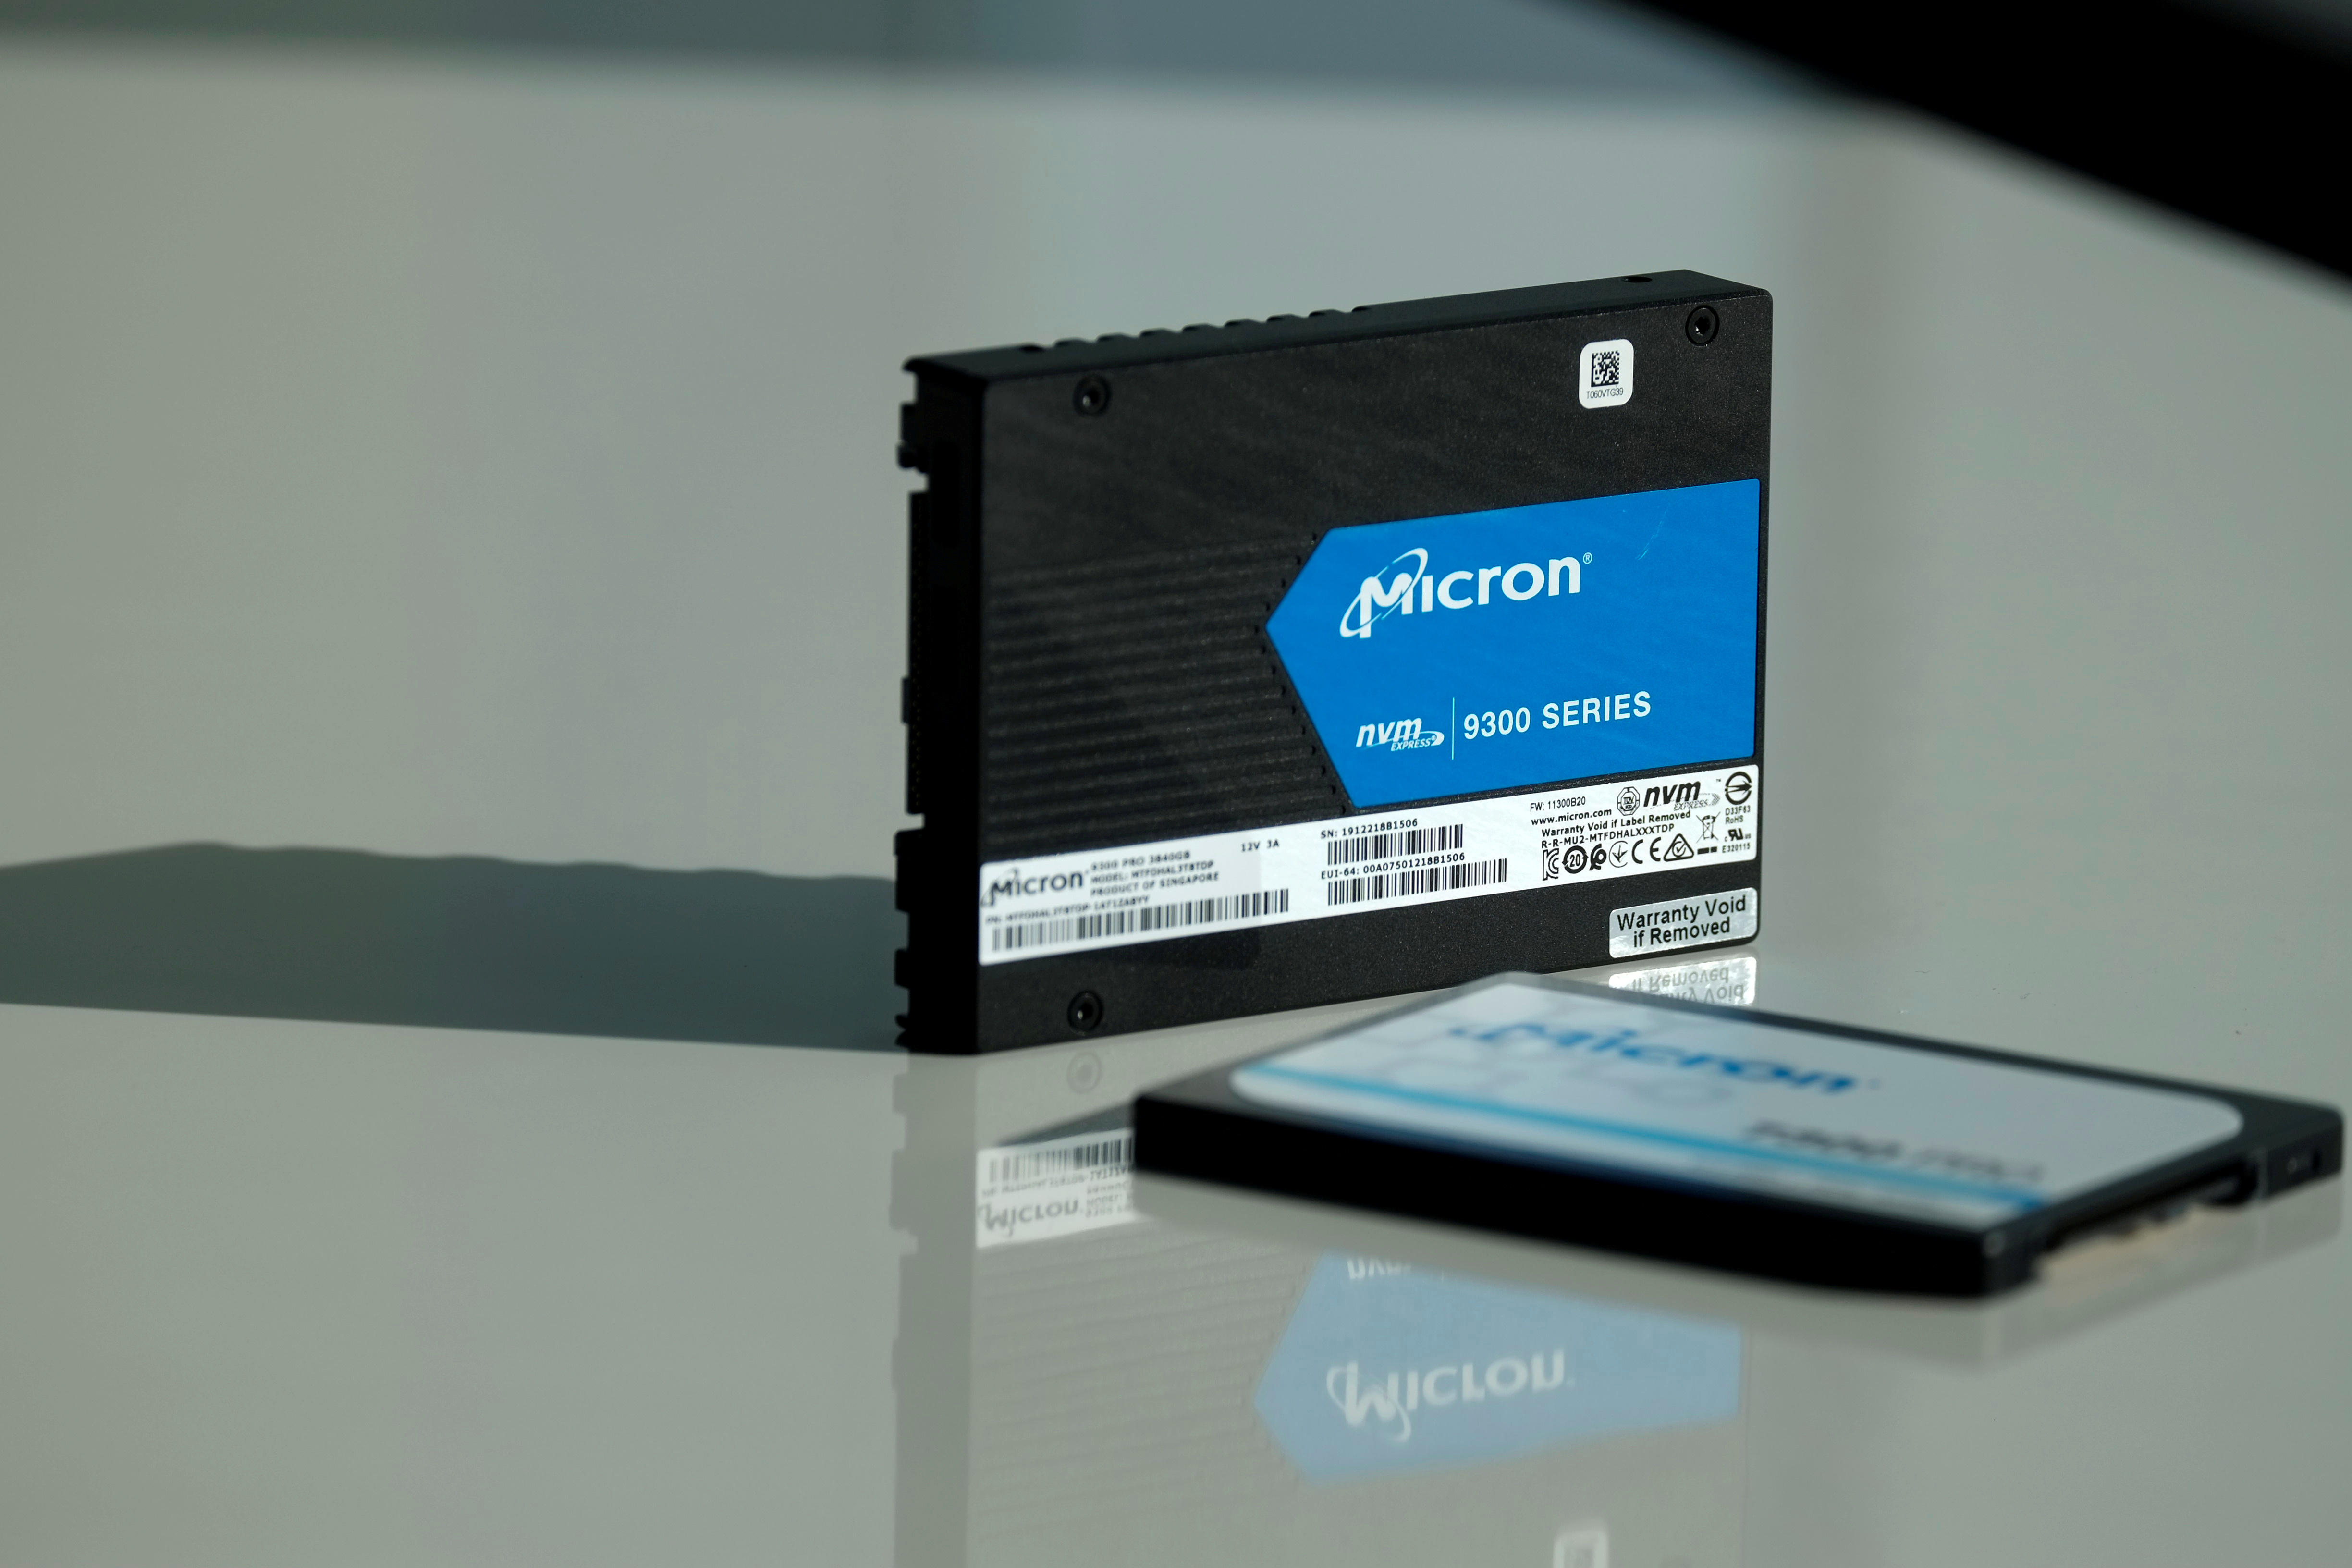 Micron Technology's solid-state drive for data center customers is presented at a product launch event in San Francisco, U.S., October 24, 2019. REUTERS/Stephen Nellis